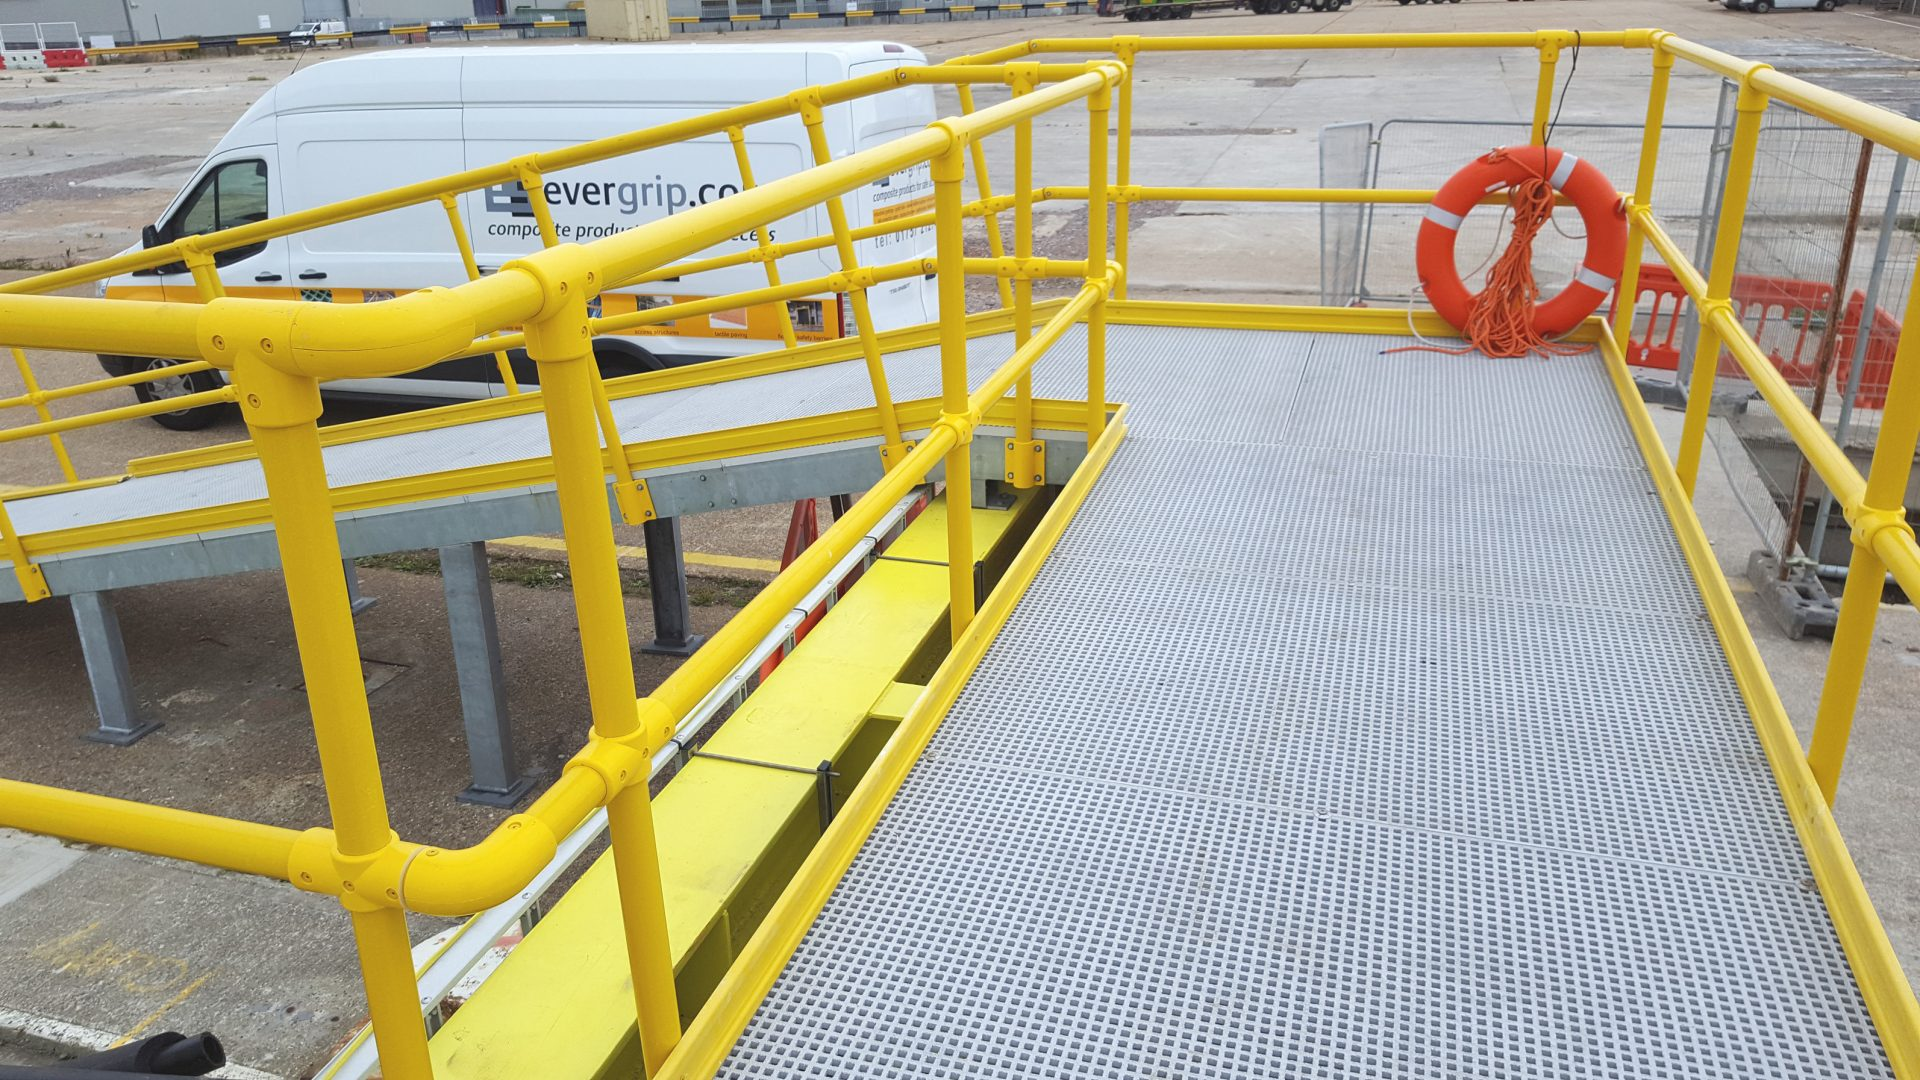 GRP grating and guard rail quayside ramped safe access walkway steel frame